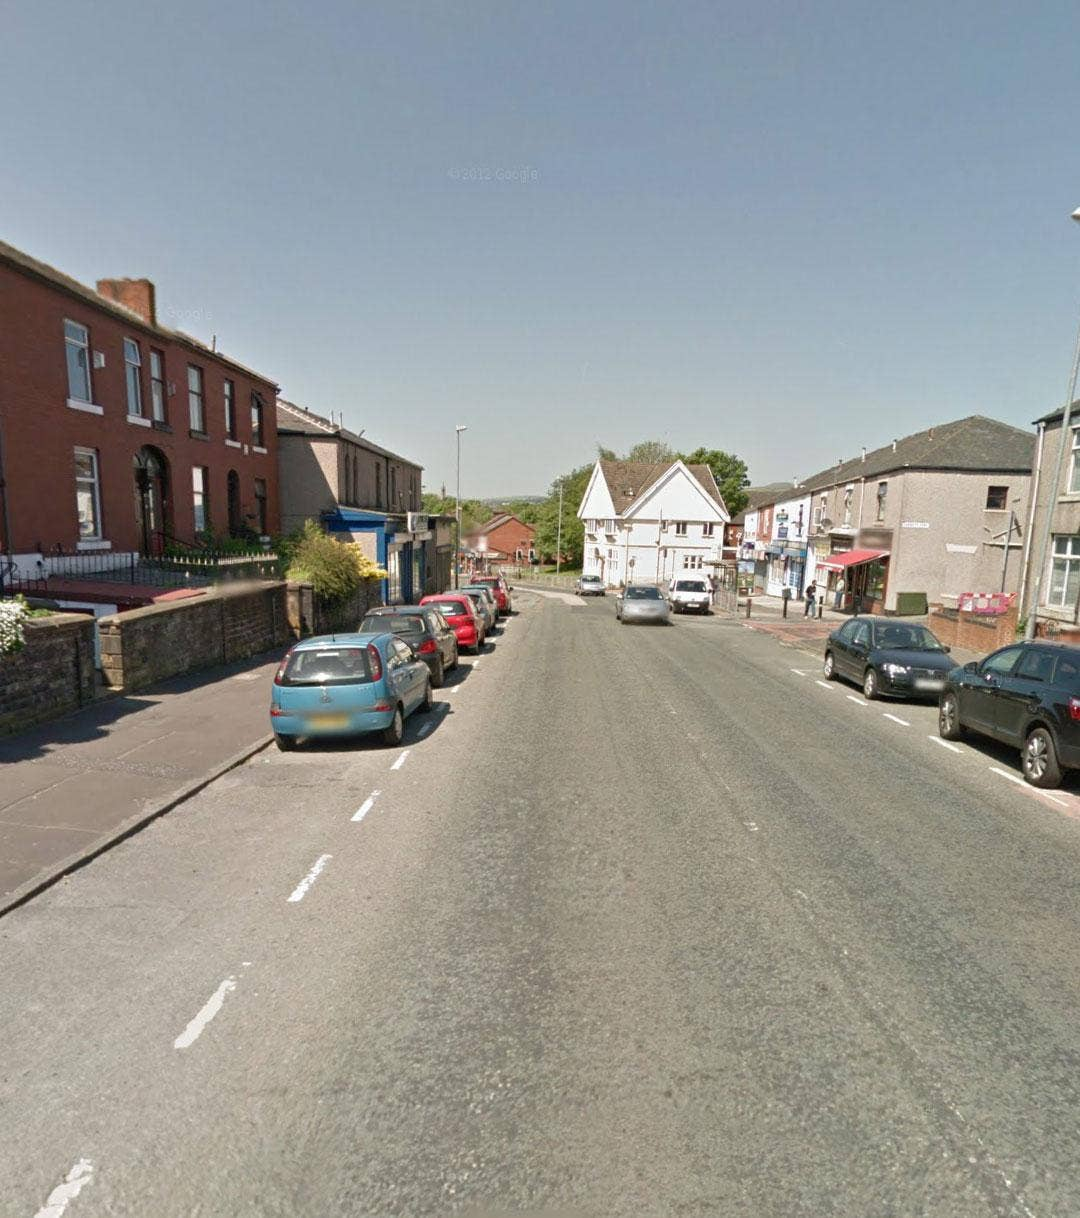 Greater Manchester police have appealed for information after a 90-year-old woman was dragged off the street on Spotland Road (pictured) as she walked to her local shop in Rochdale and raped.